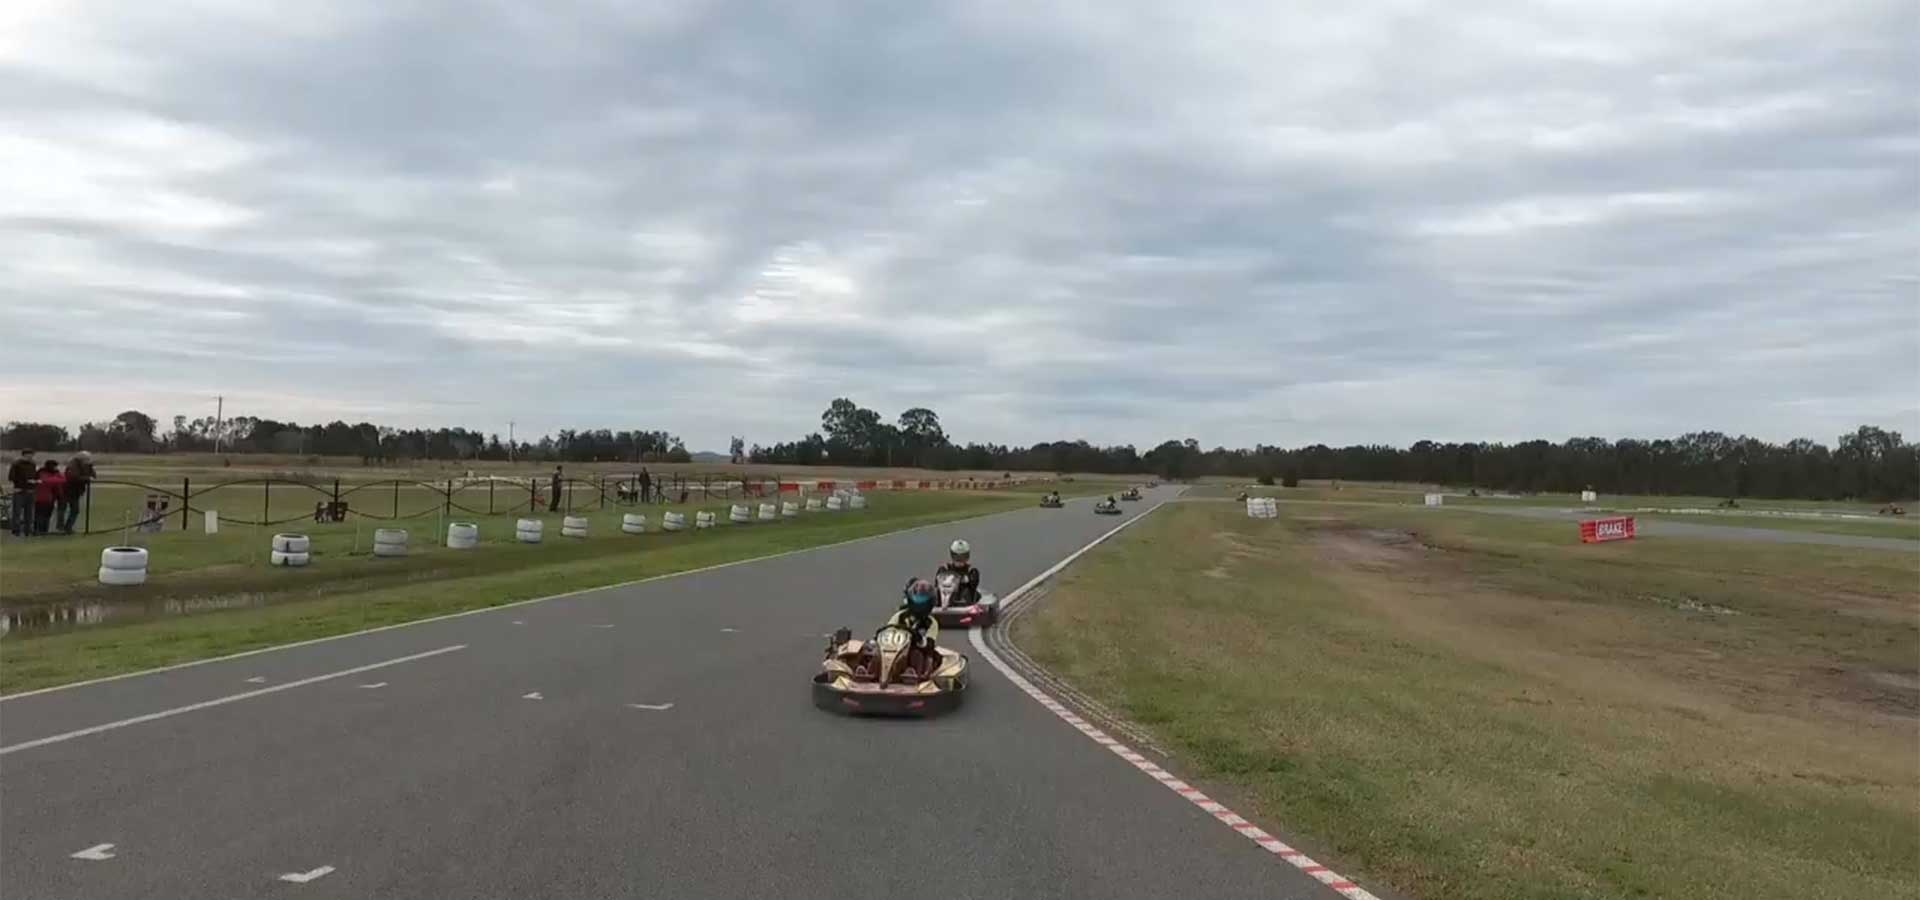 Circuito Karting : Xtreme karting pure racing excitement